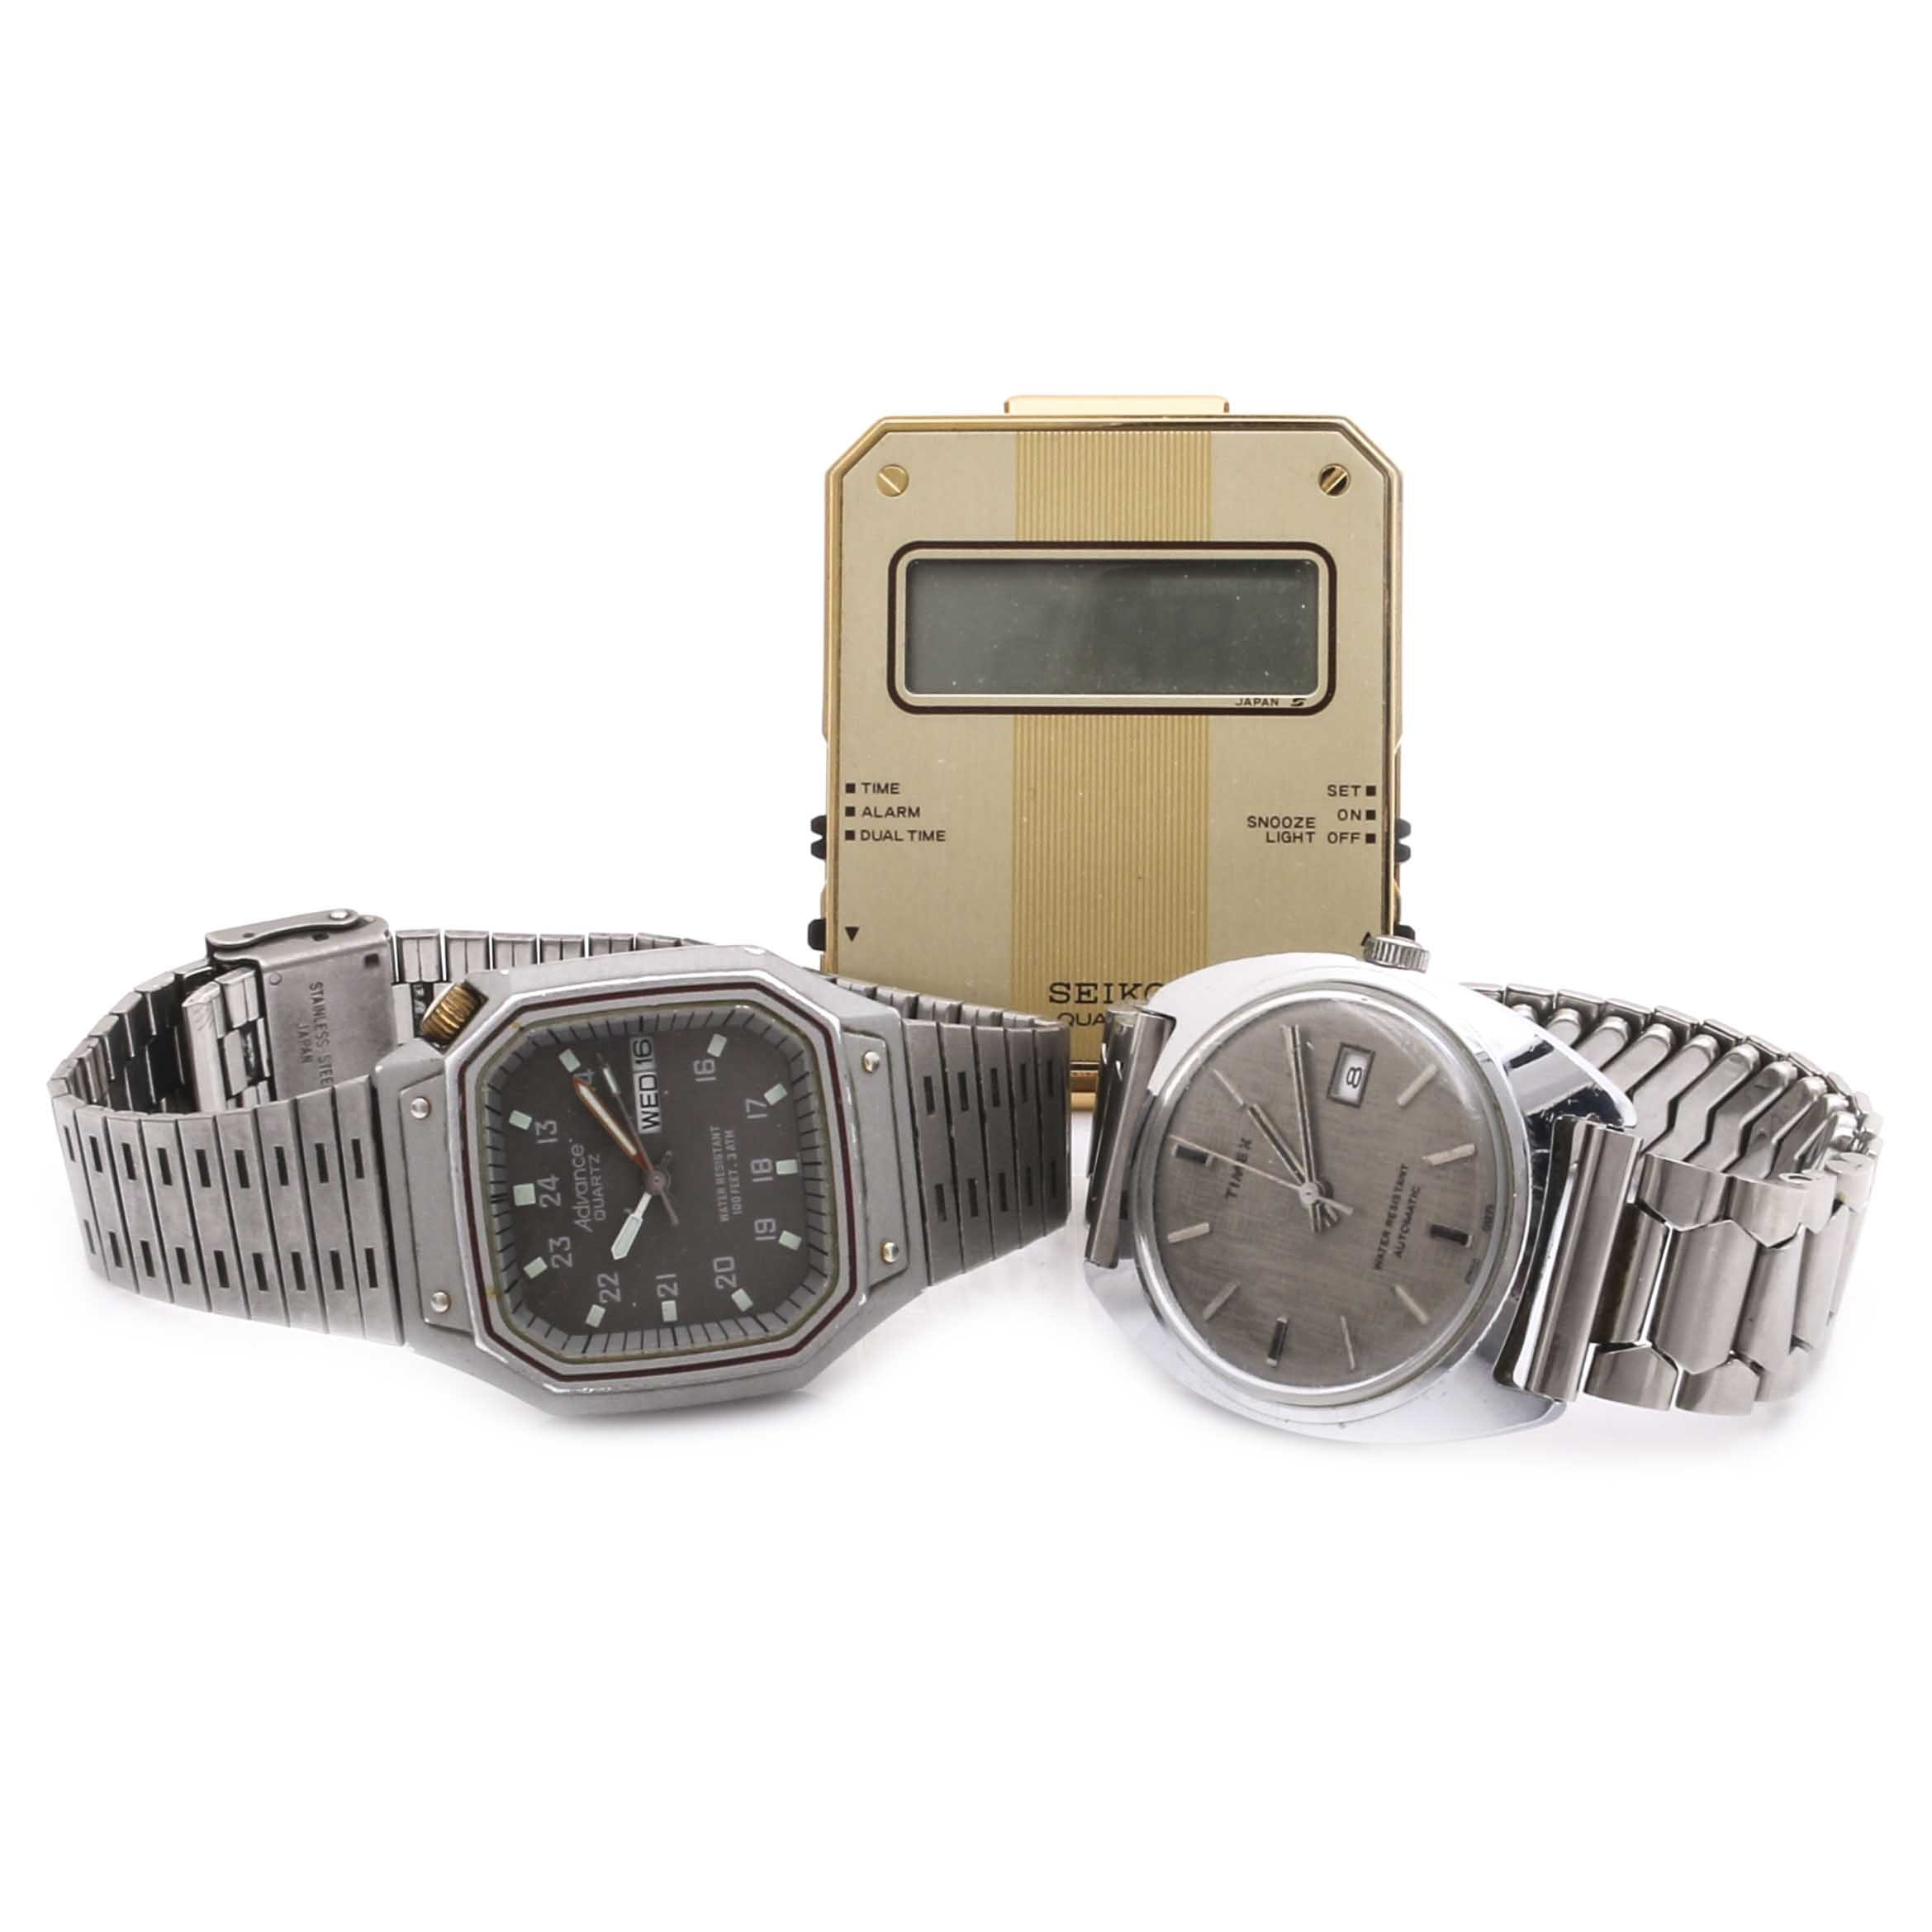 Three Timepieces by Seiko, Timex and Advance